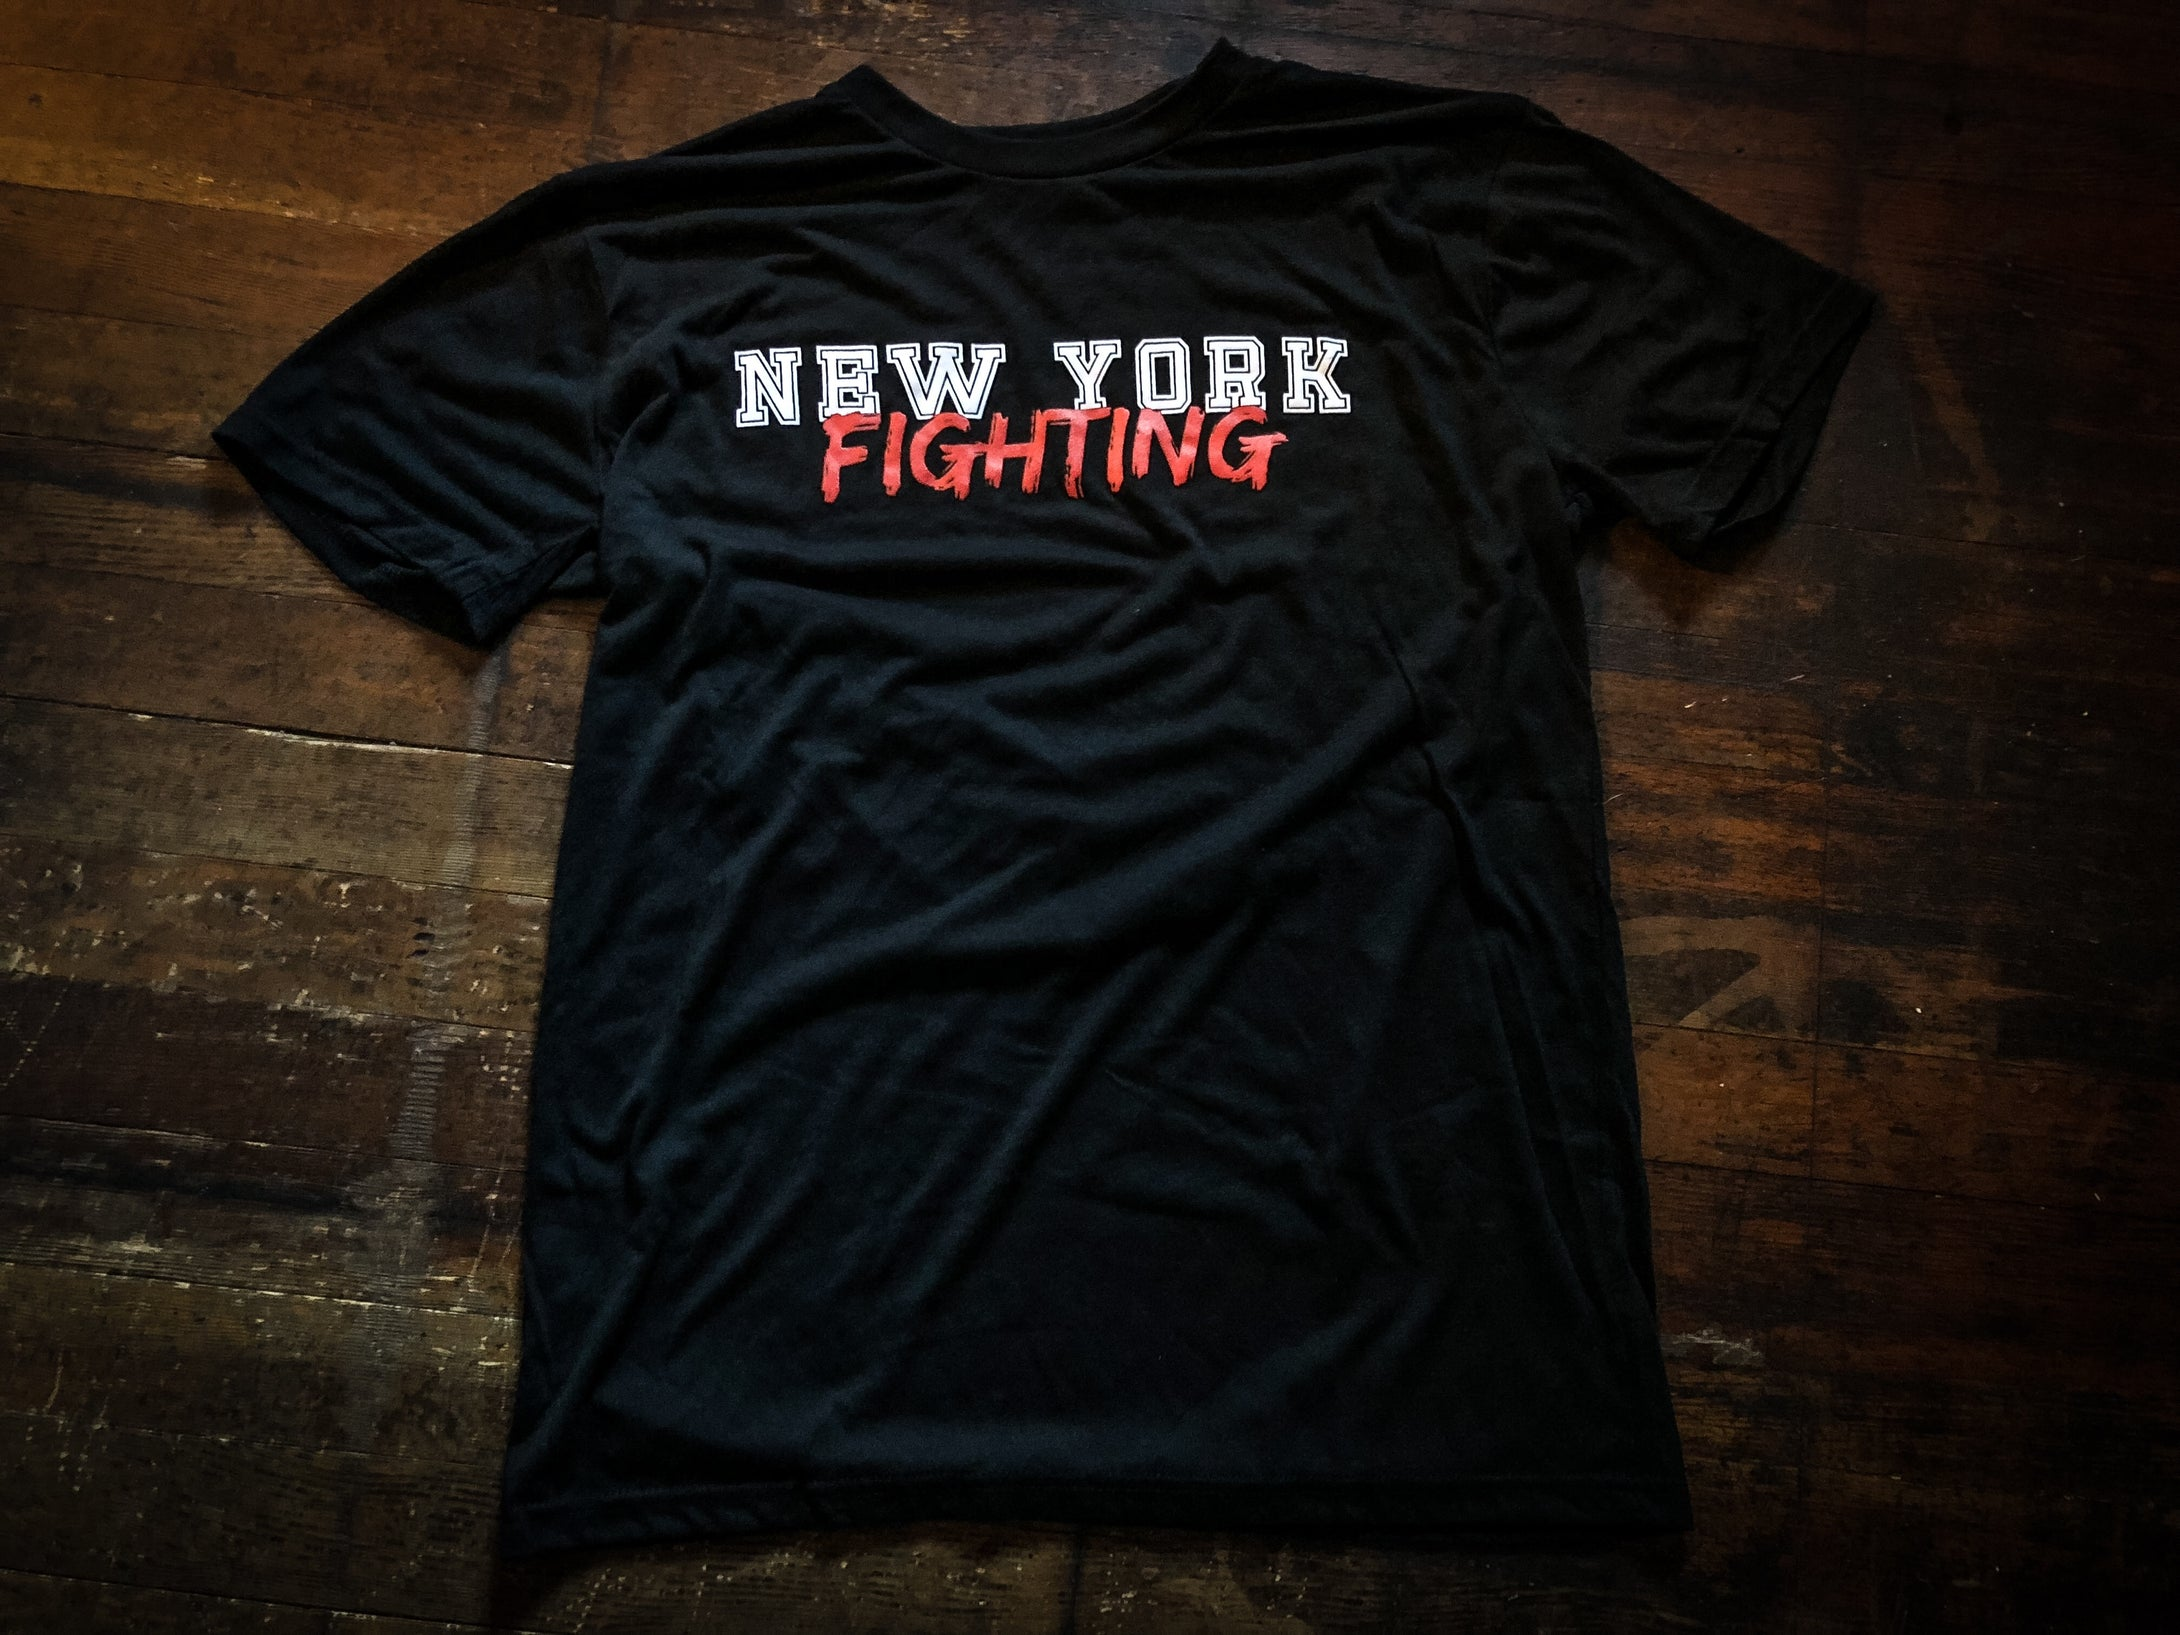 New York Fighting Tee